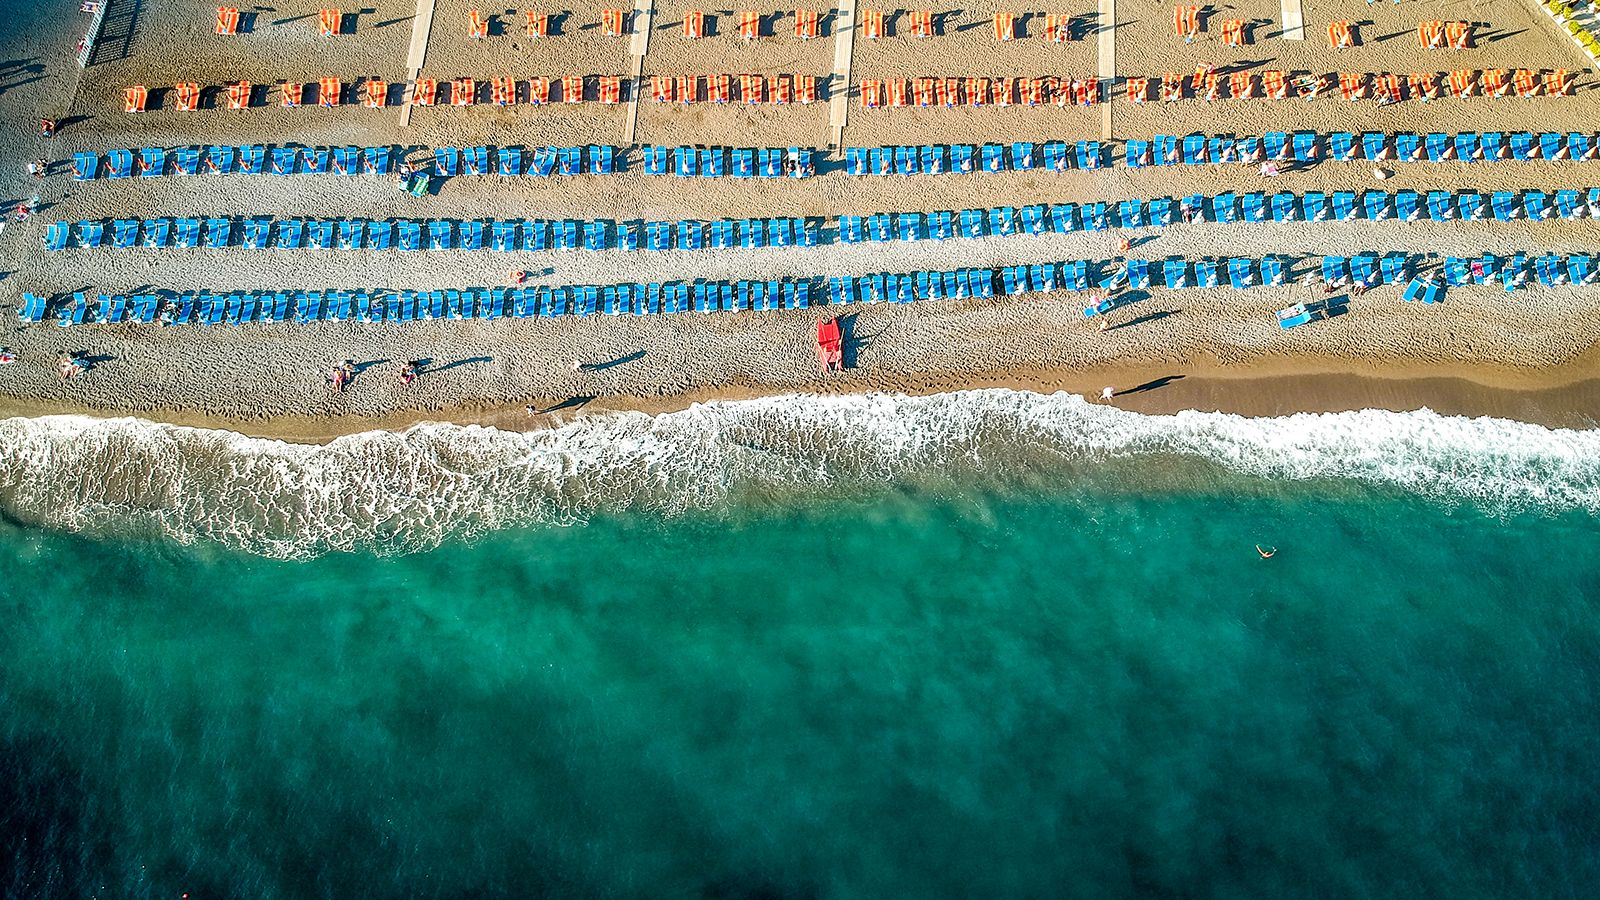 Positano beach, from above